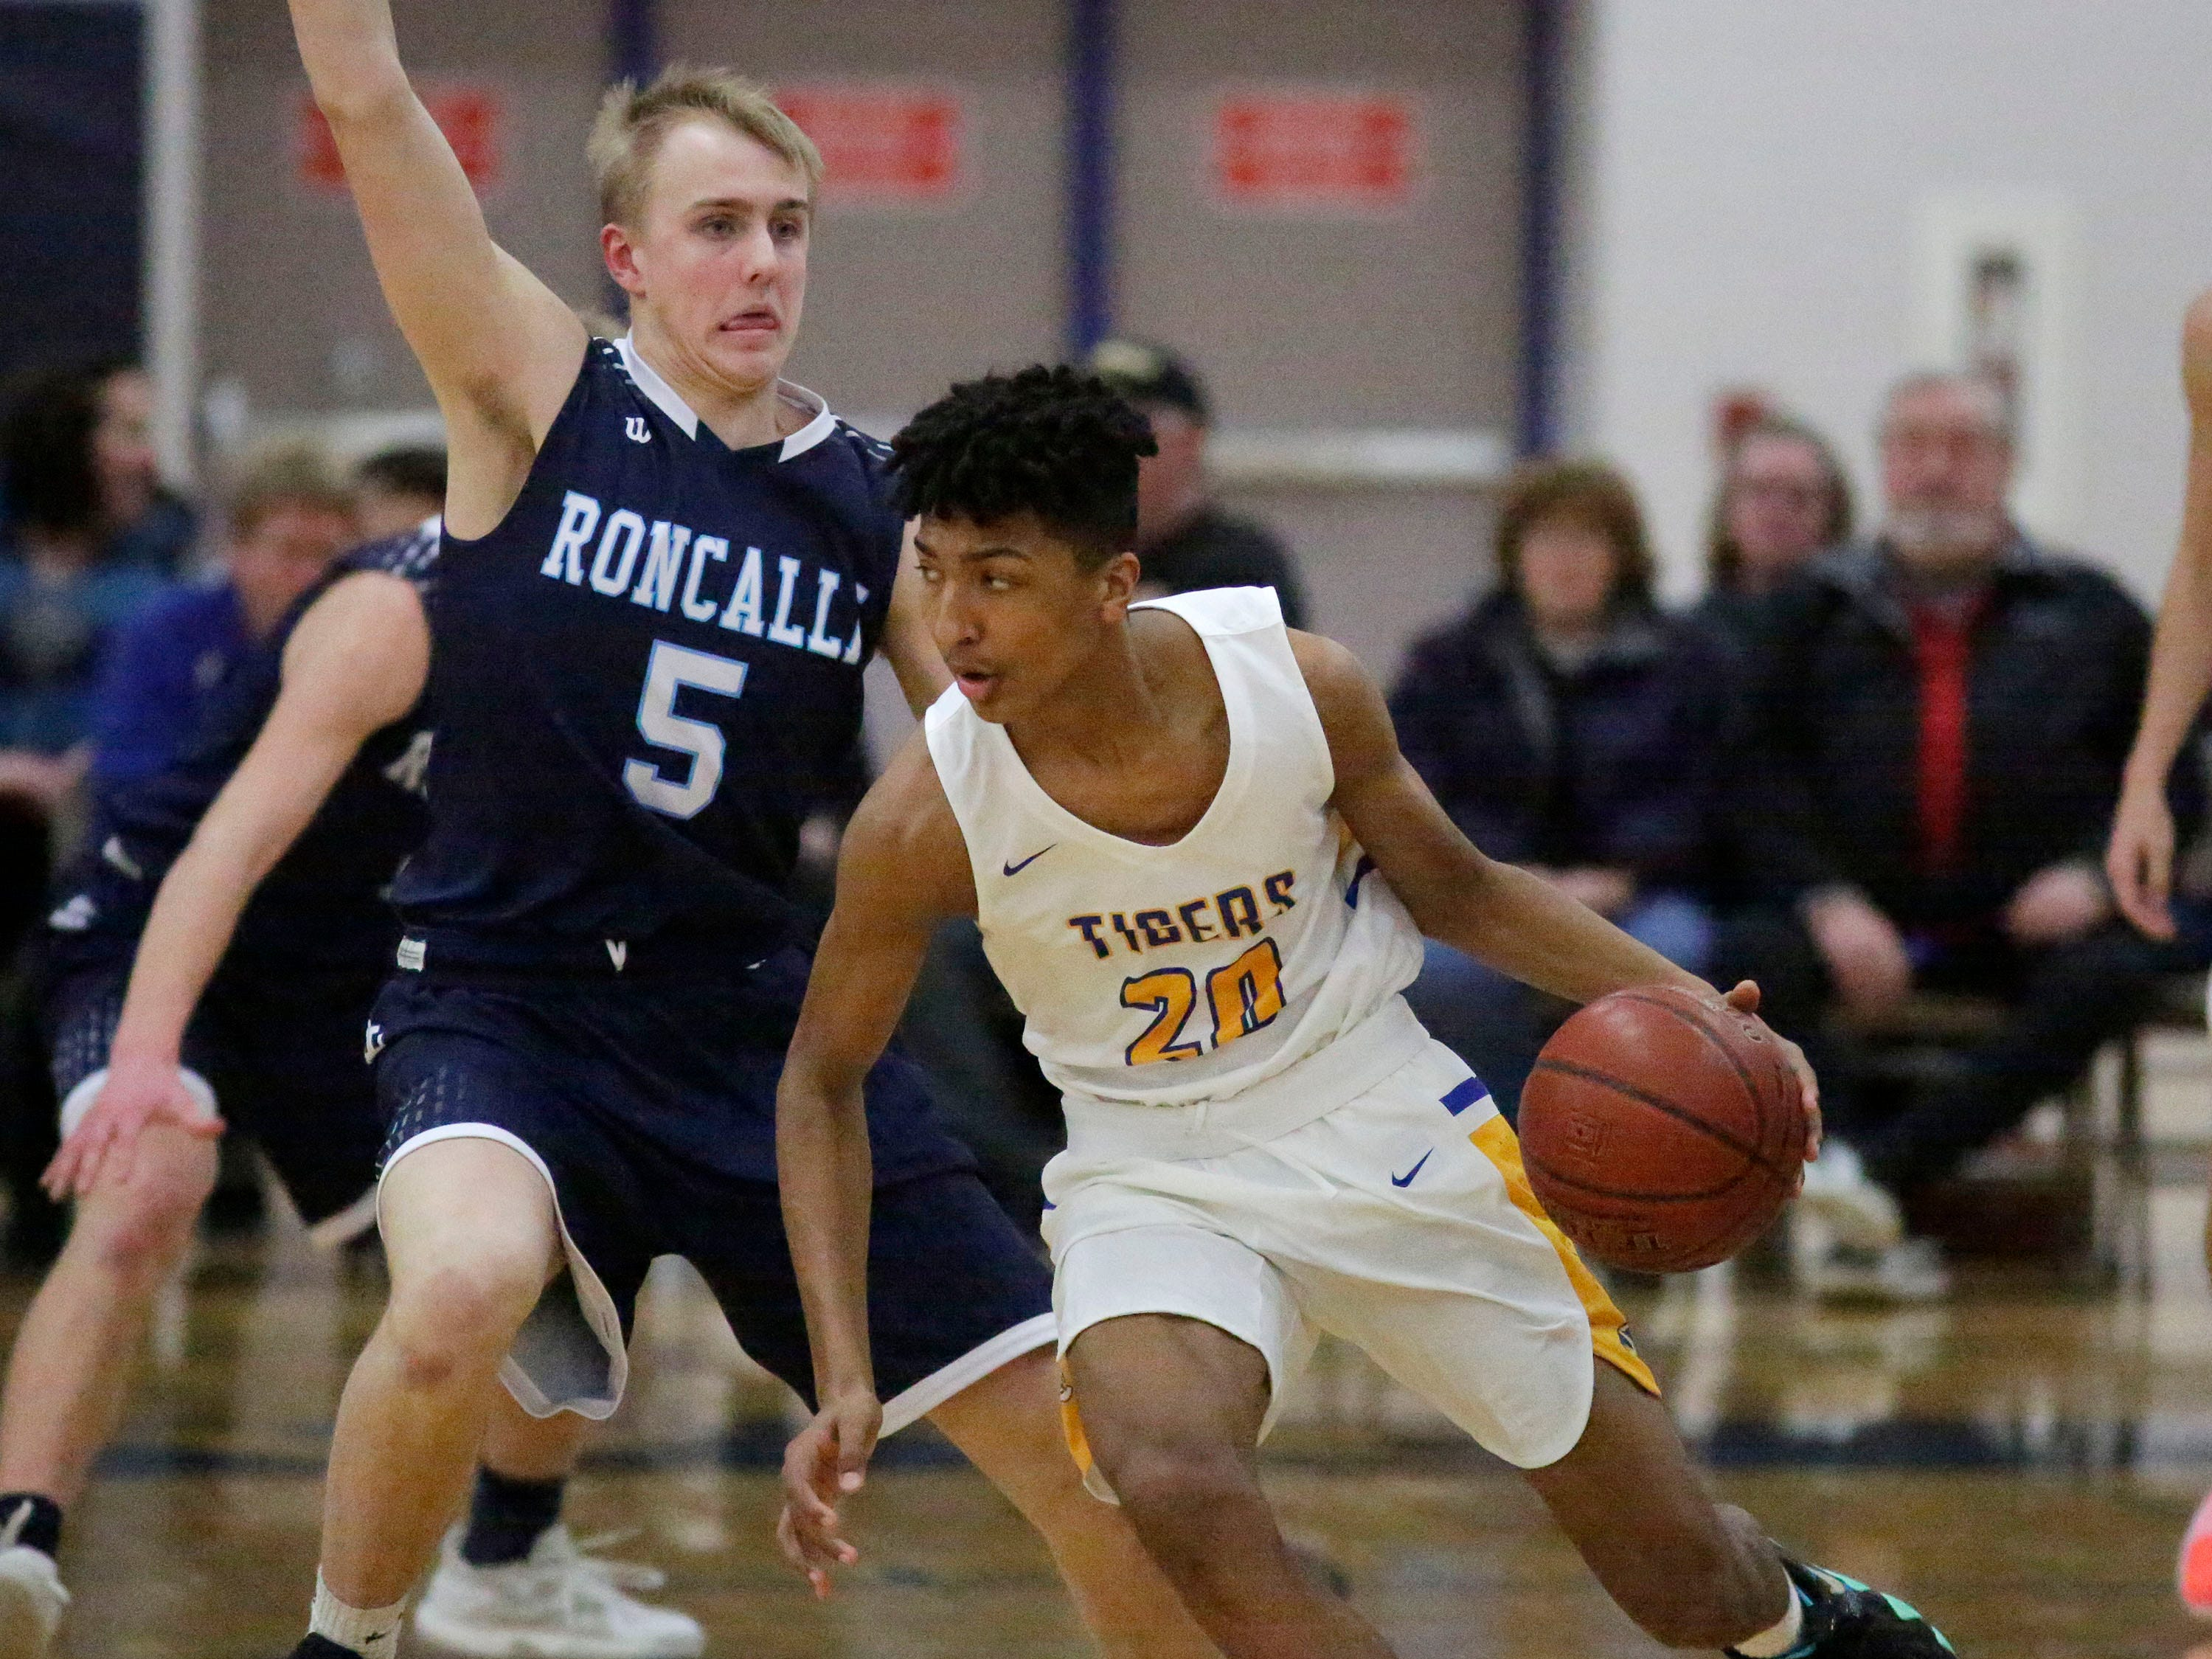 Howards Grove's Kaden Summerville (20) drives the ball around Roncalli's Lujke Pautz (5), Monday, February 18, 2019, at Howards Grove, Wis.